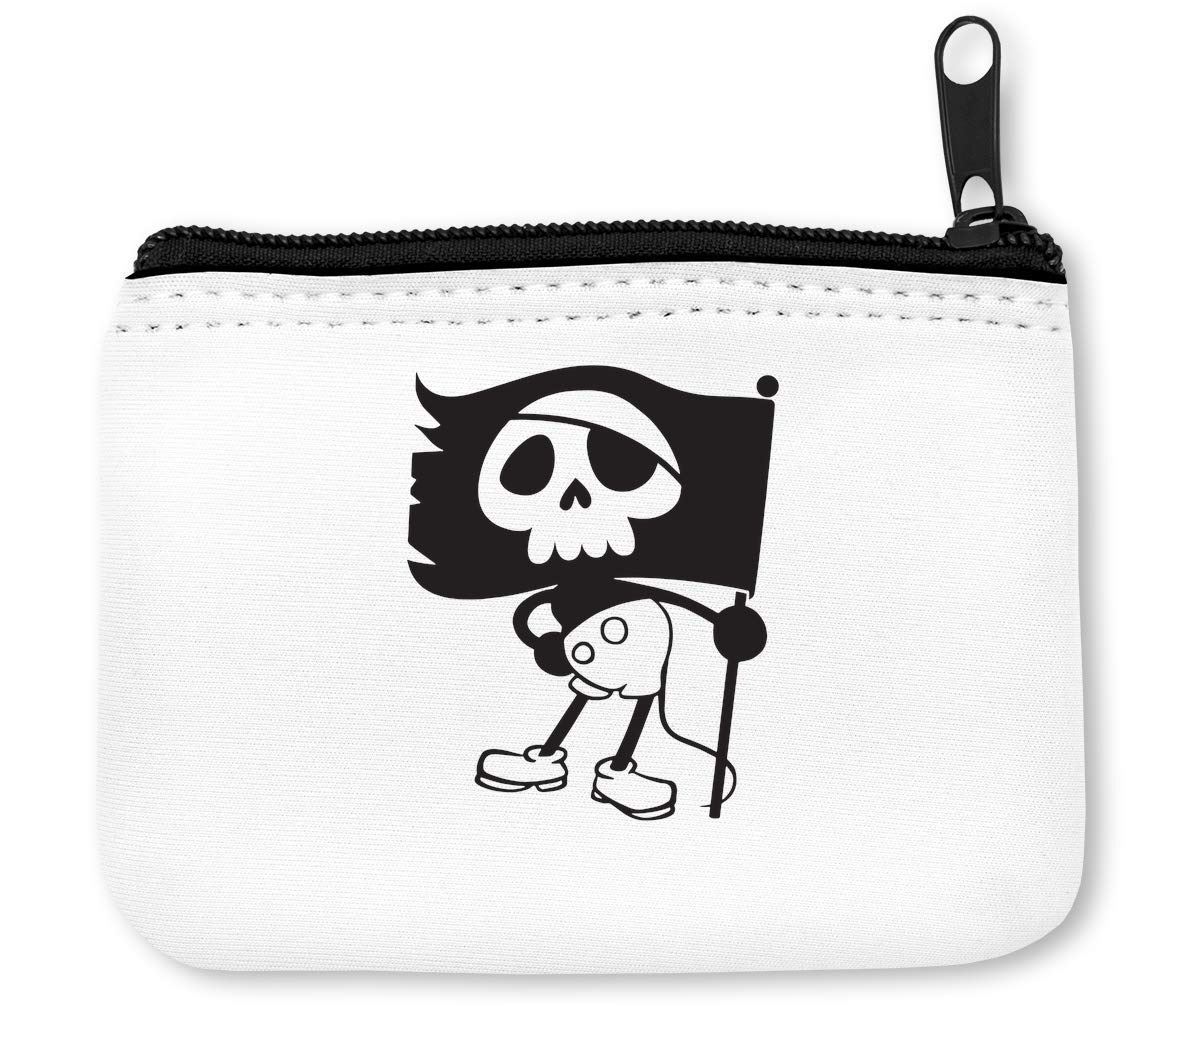 Mickey Mouse The Pirate Monedero de la Cremallera de la ...